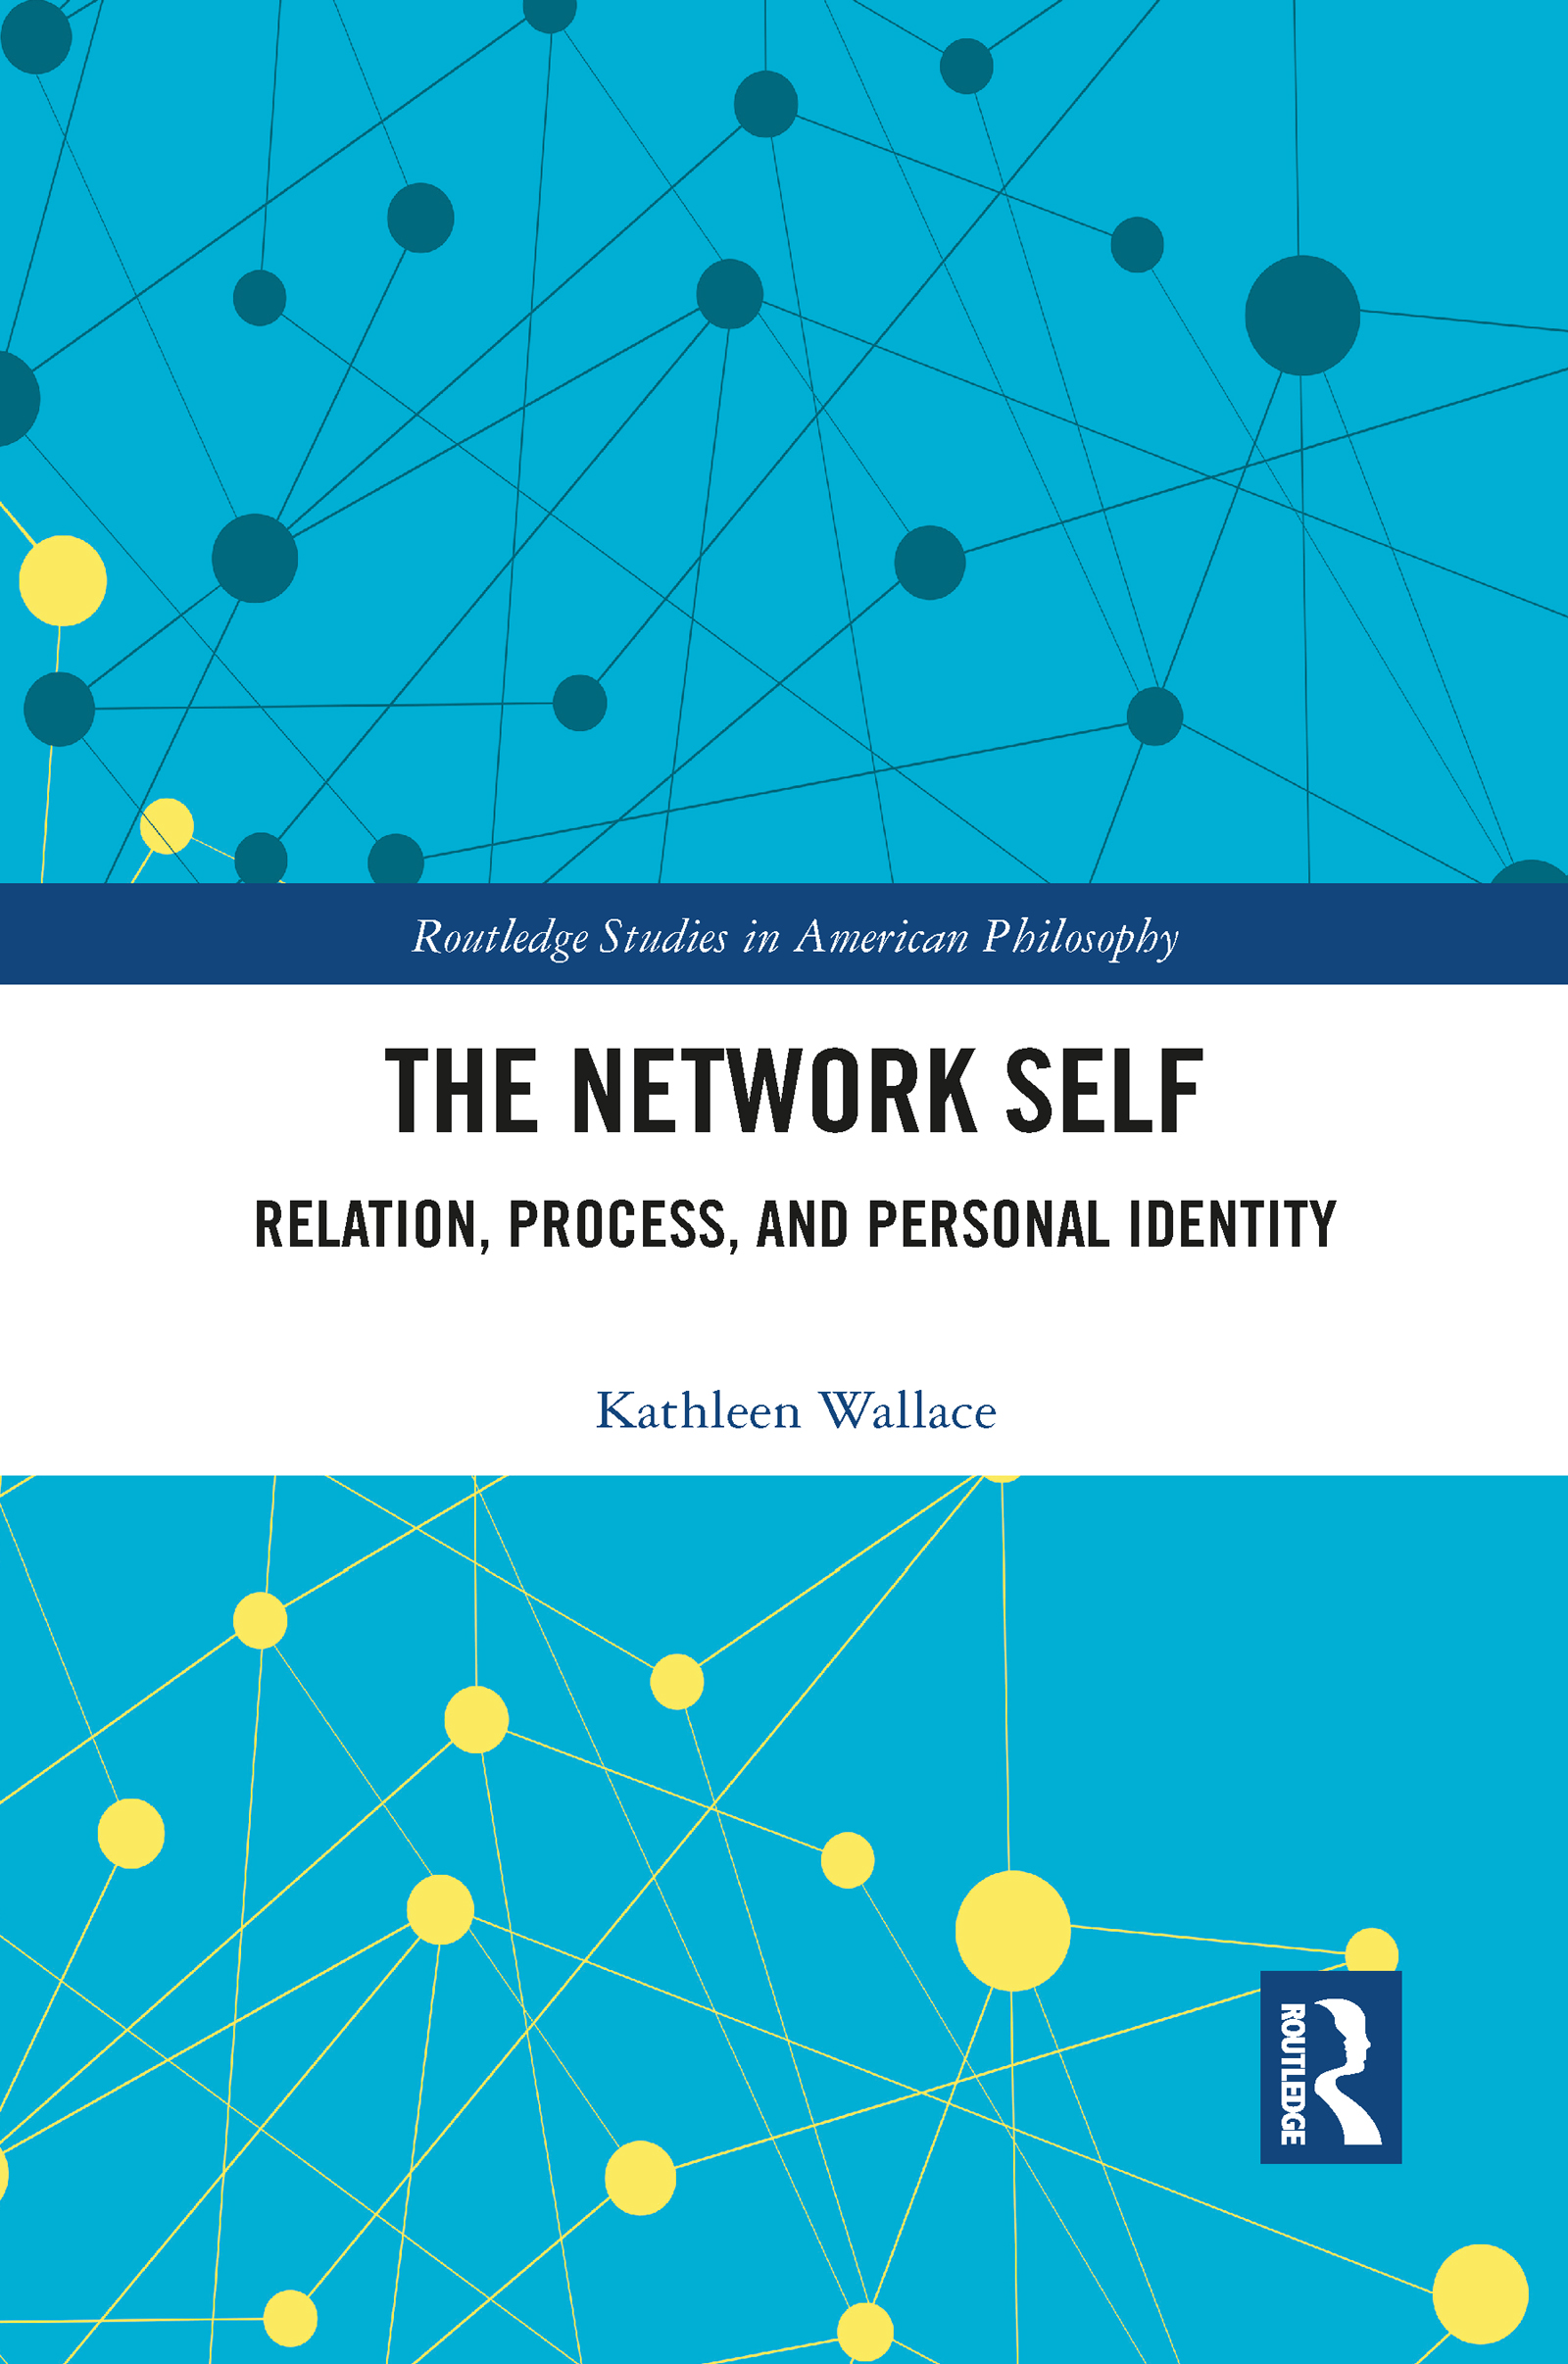 The Network Self